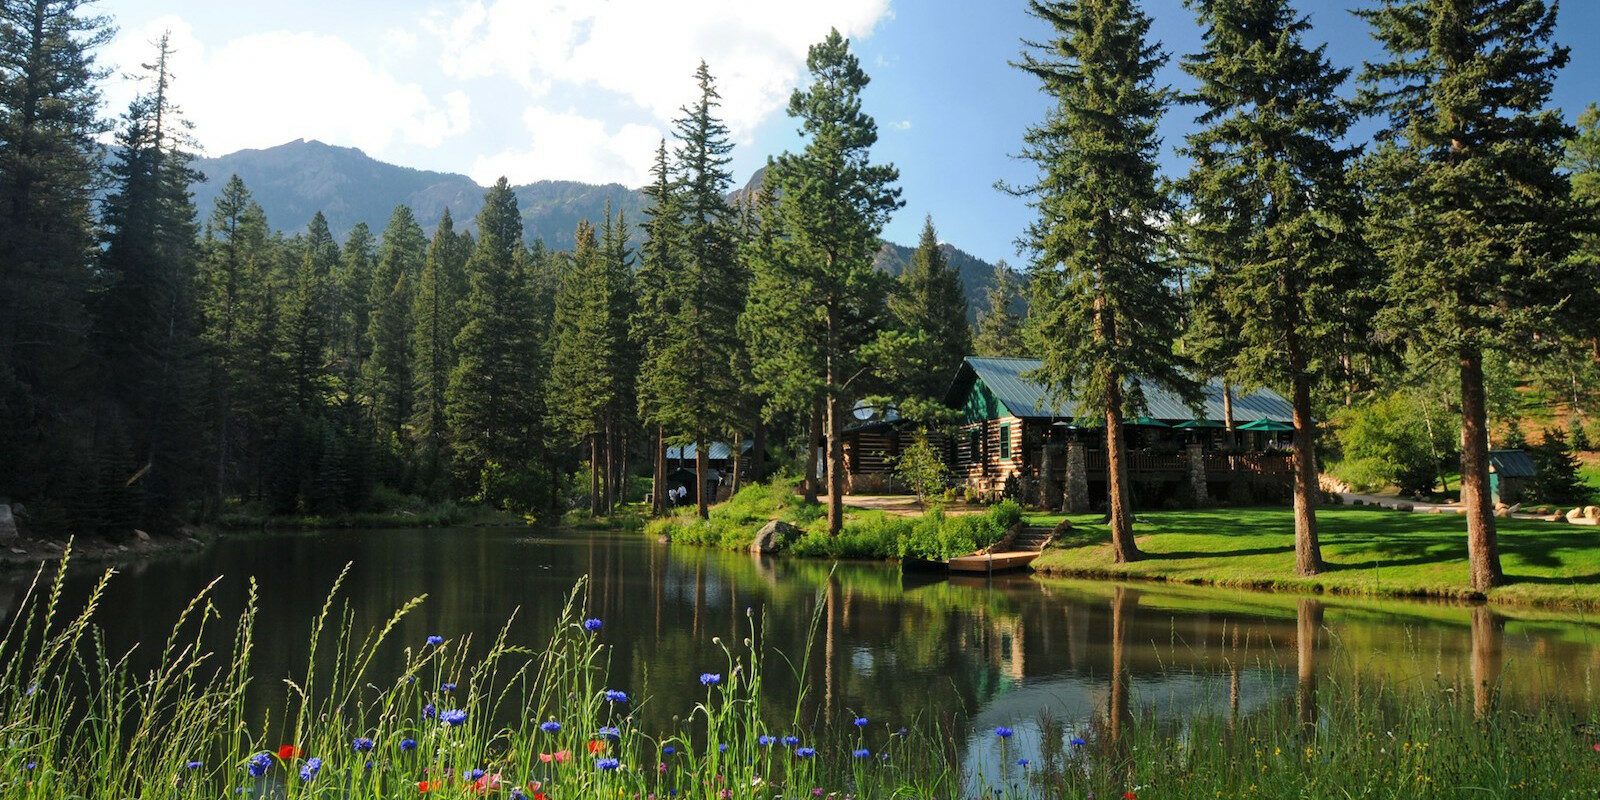 Image of The Ranch at Emerald Valley at the Broadmoor in Colorado Springs, CO